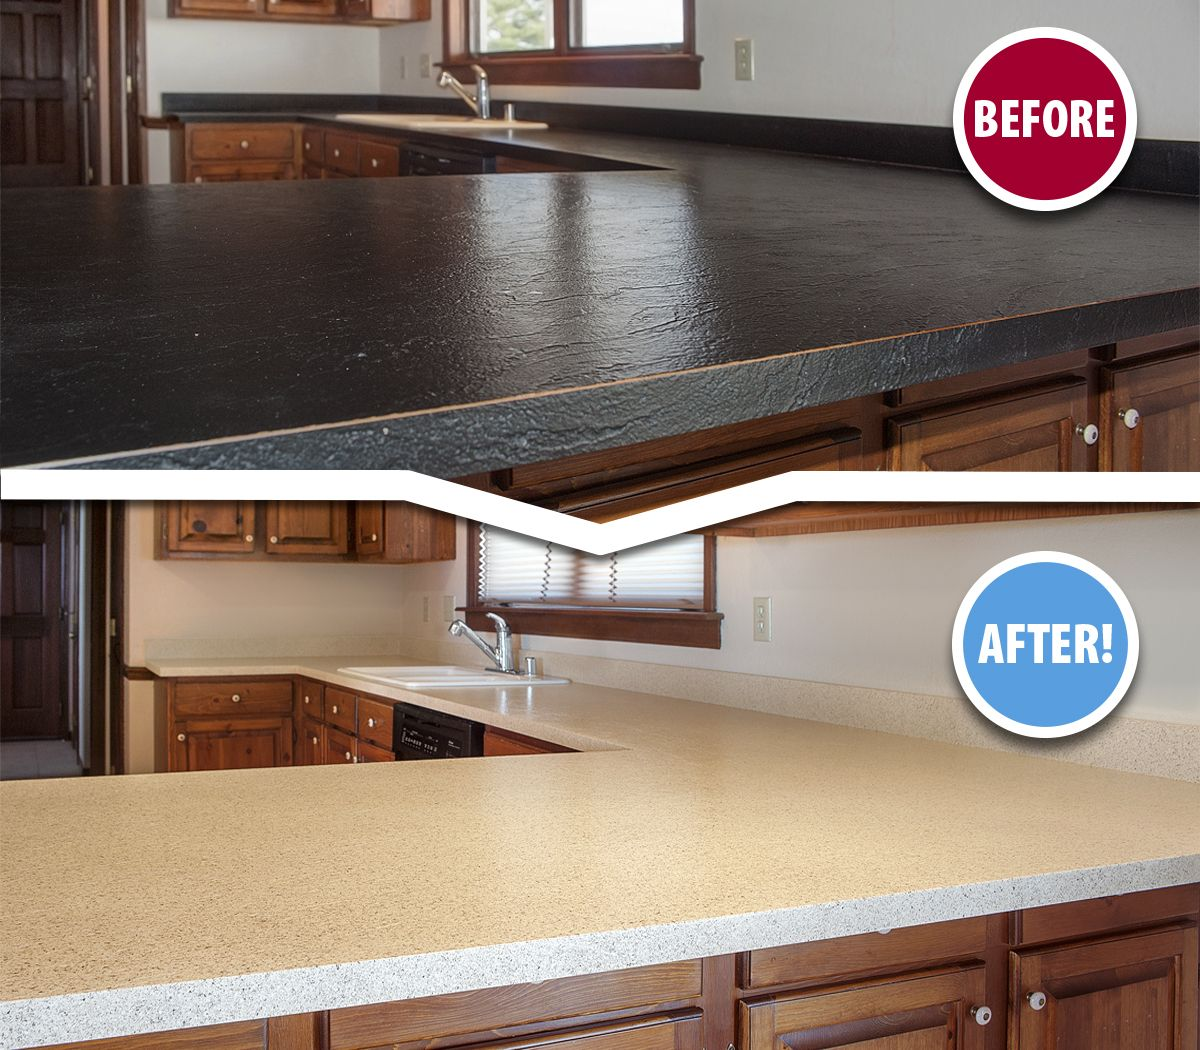 If Your Outdated Kitchen Countertops Have Become An Eyesore You